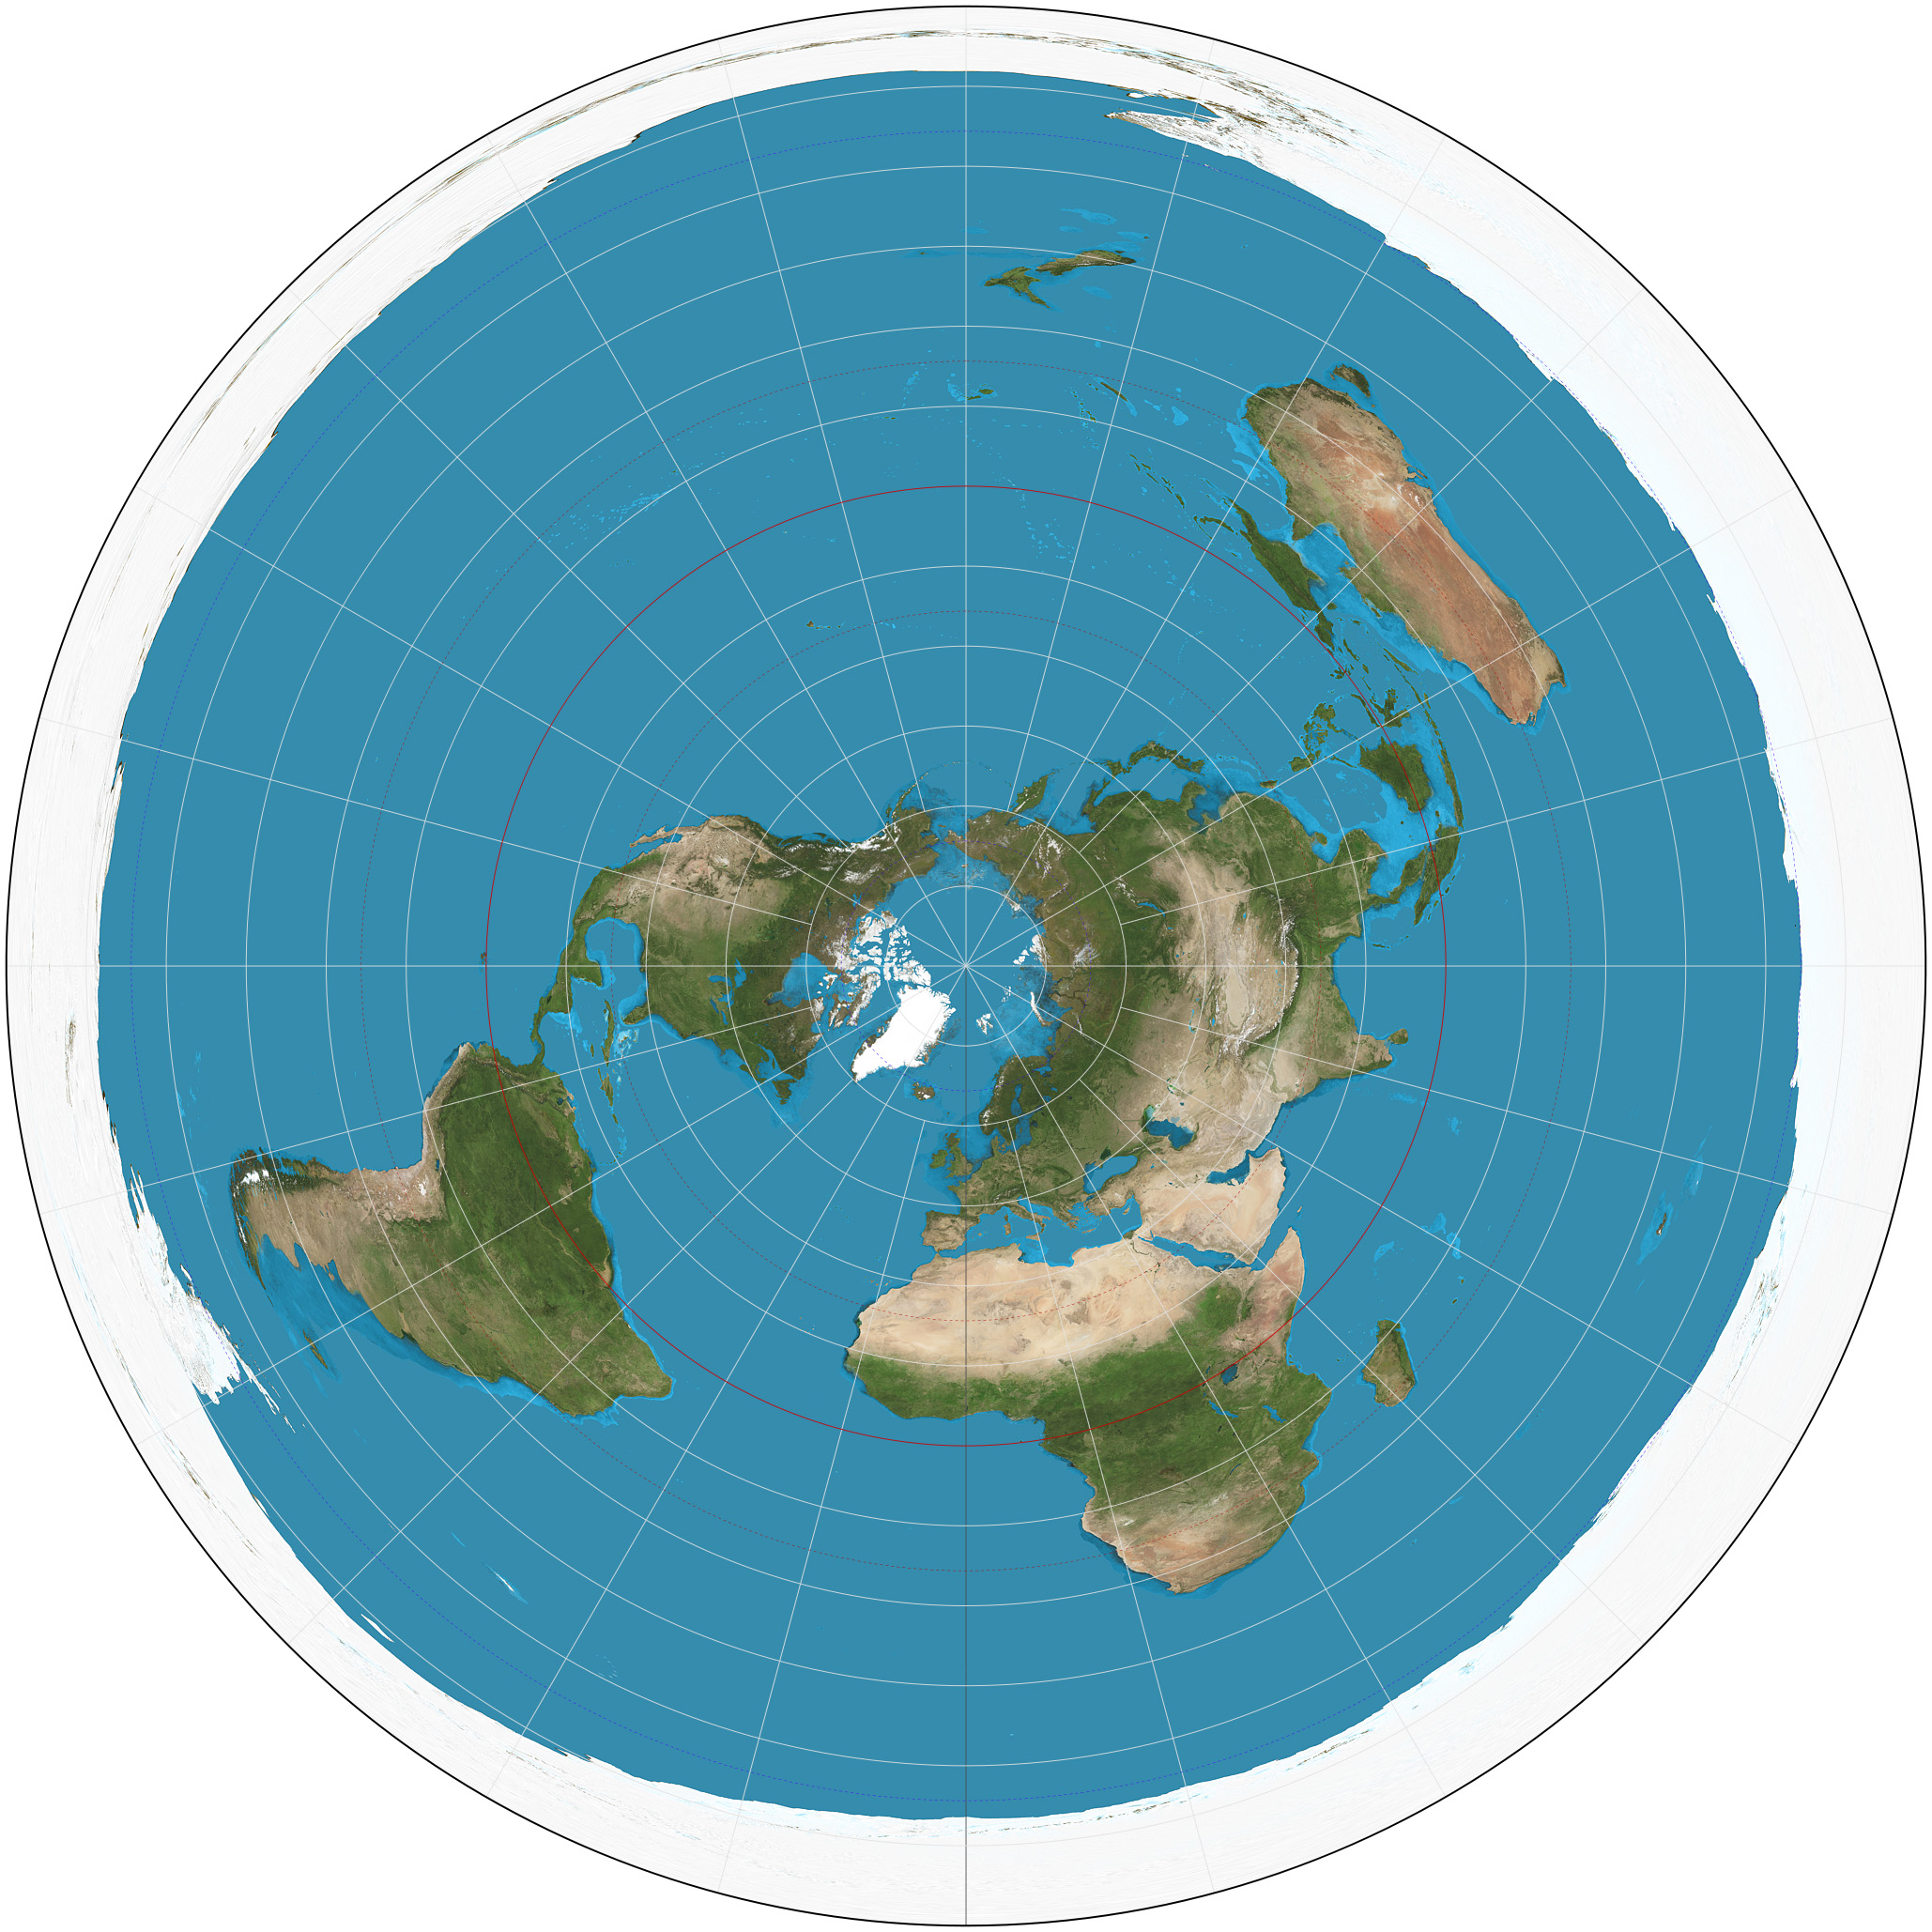 https://upload.wikimedia.org/wikipedia/commons/e/ec/Azimuthal_equidistant_projection_SW.jpg